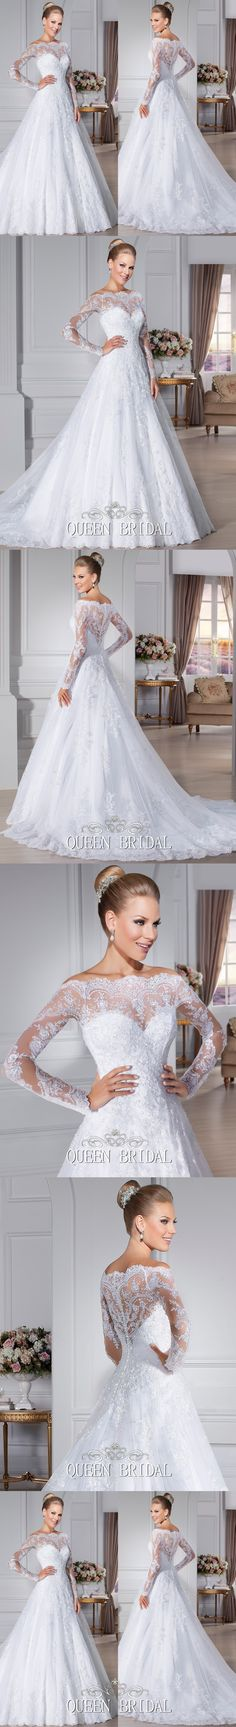 White long sleeve lace wedding dresses 2015 vintage a-line bridal dress wedding gown vestido de noiva manga longa H14